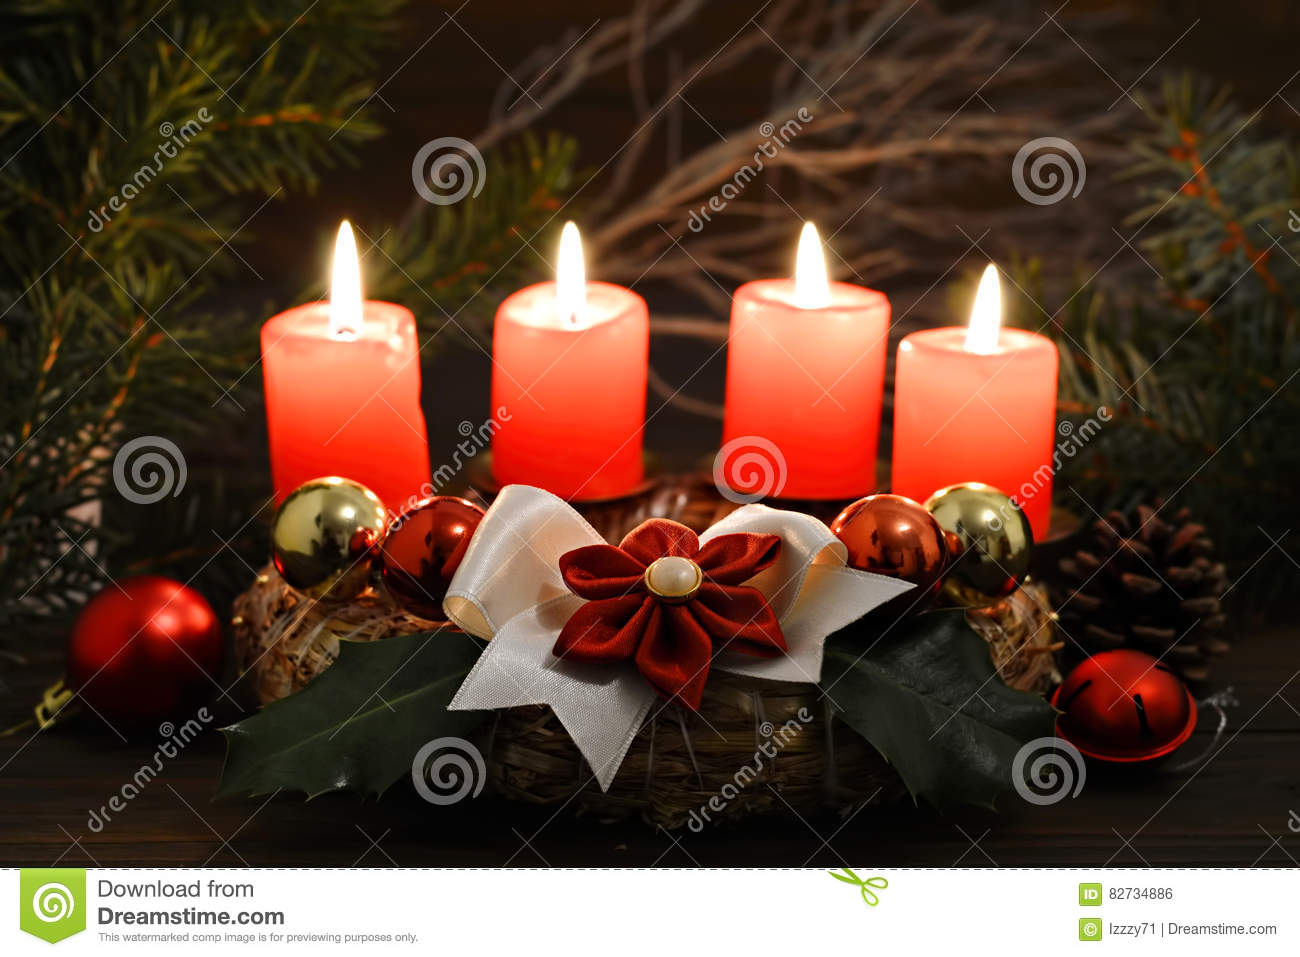 Christmas time: Four burning candles